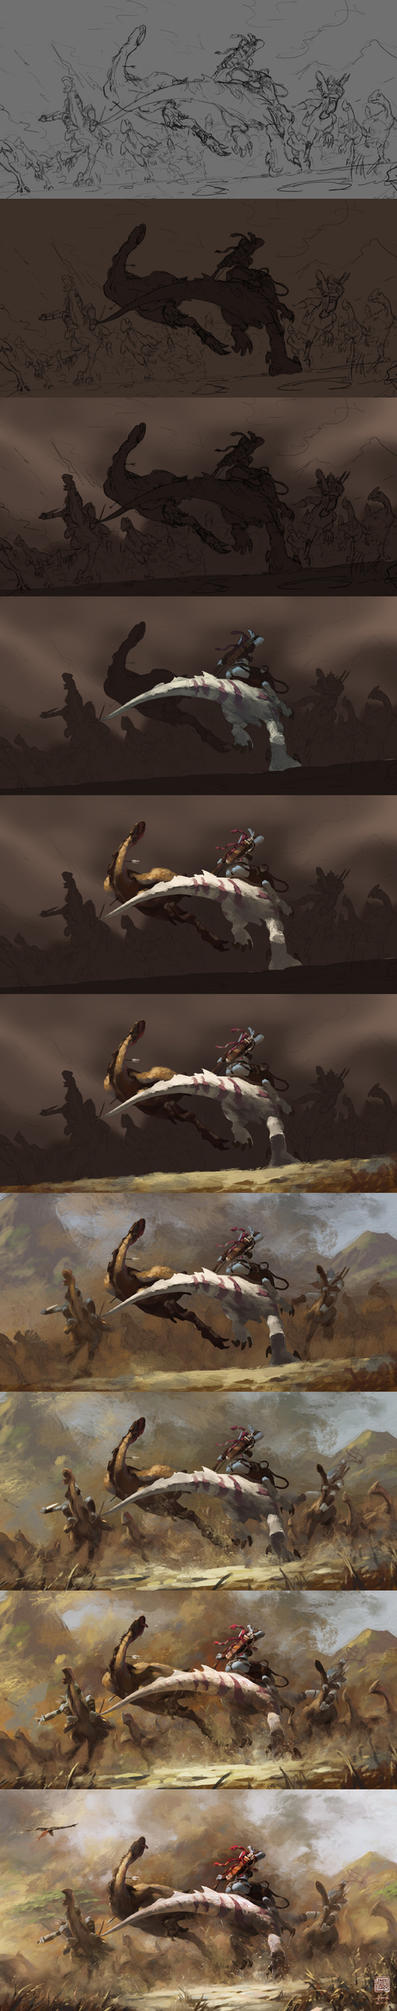 The painting process of Hunting by 6kart